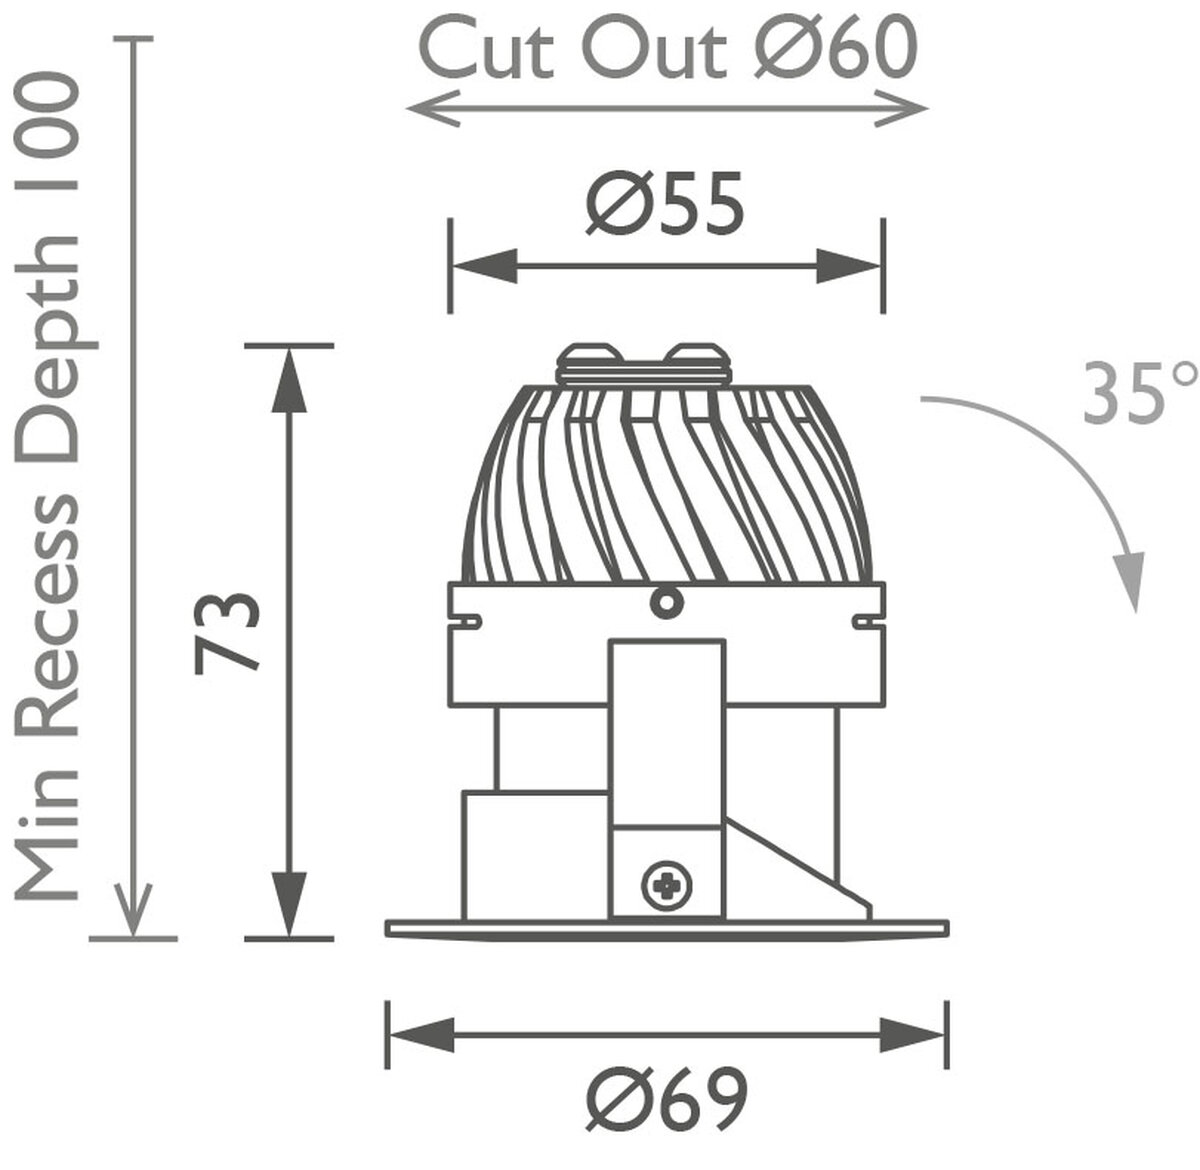 Polespring 50 Downlight technical image